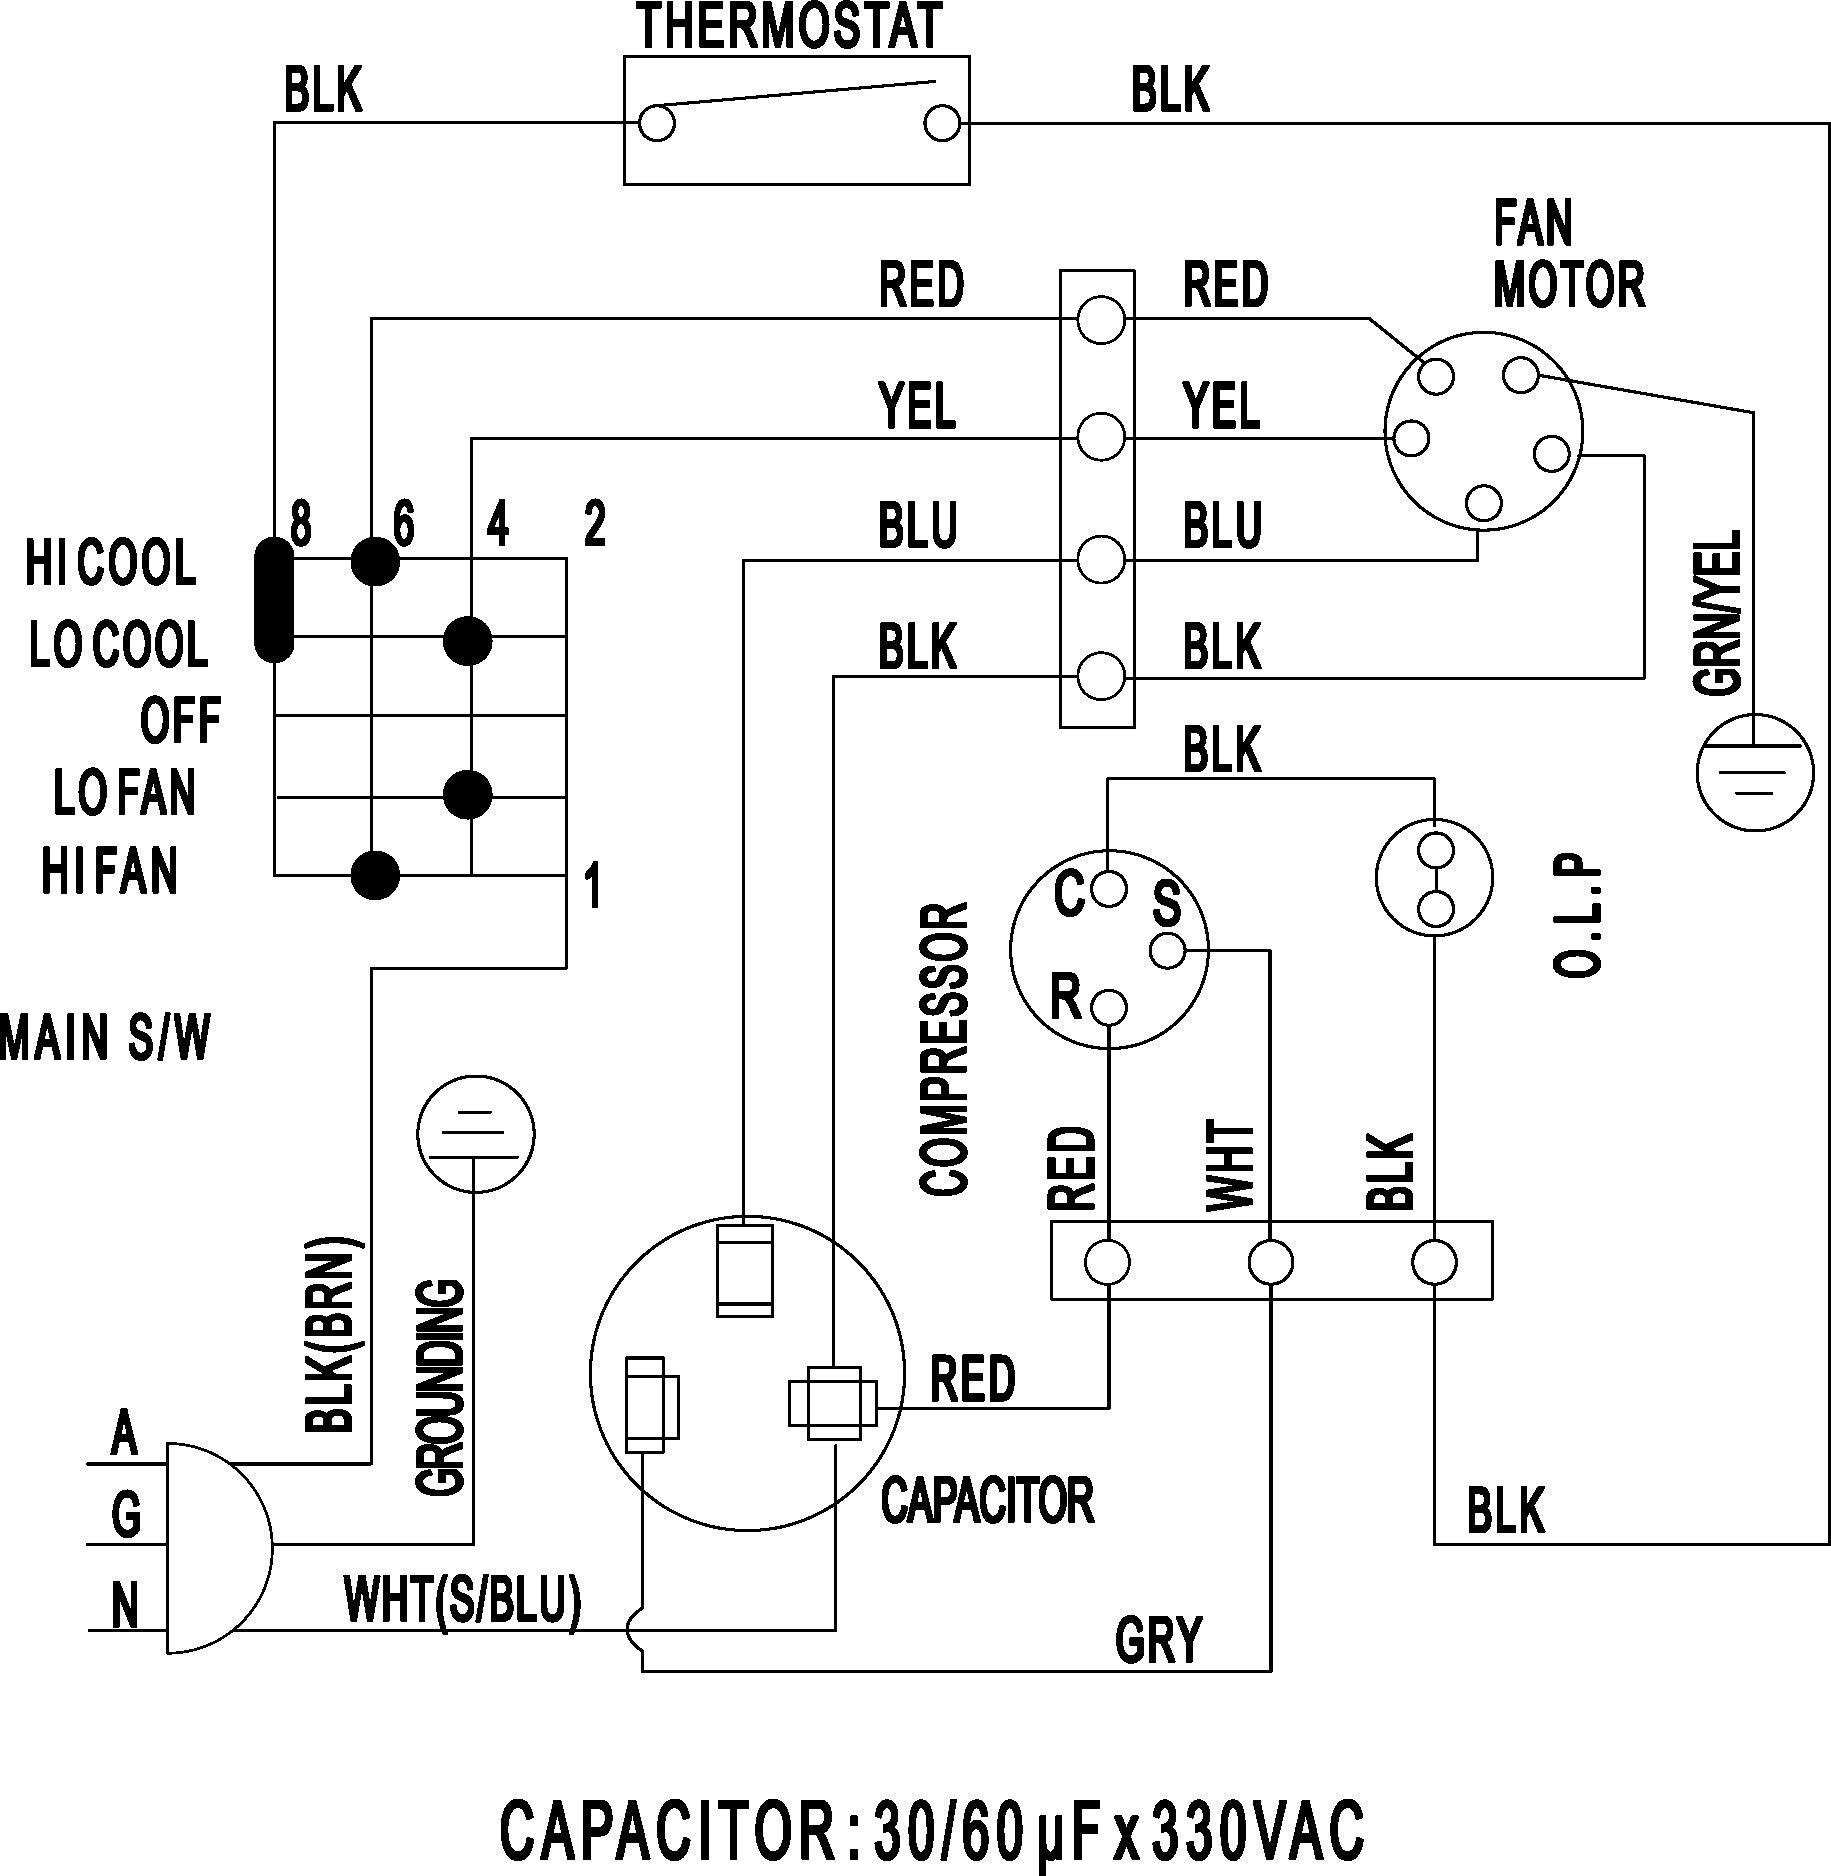 Wiring Aac Condensing Unit - Auto Electrical Wiring Diagram • on electrical contactor diagram, circuit diagram, contactor relay, generac transfer switch diagram, single phase reversing contactor diagram, carrier furnace parts diagram, push button start stop diagram, logic flow diagram, magnetic contactor diagram, abortion diagram, contactor operation diagram, contactor coil, 6 prong toggle switch diagram, kitchen stoves and ovens diagram, 3 position selector switch diagram, mechanically held lighting contactor diagram, contactor parts, reverse polarity relay diagram, contactor switch, contactor exploded view,